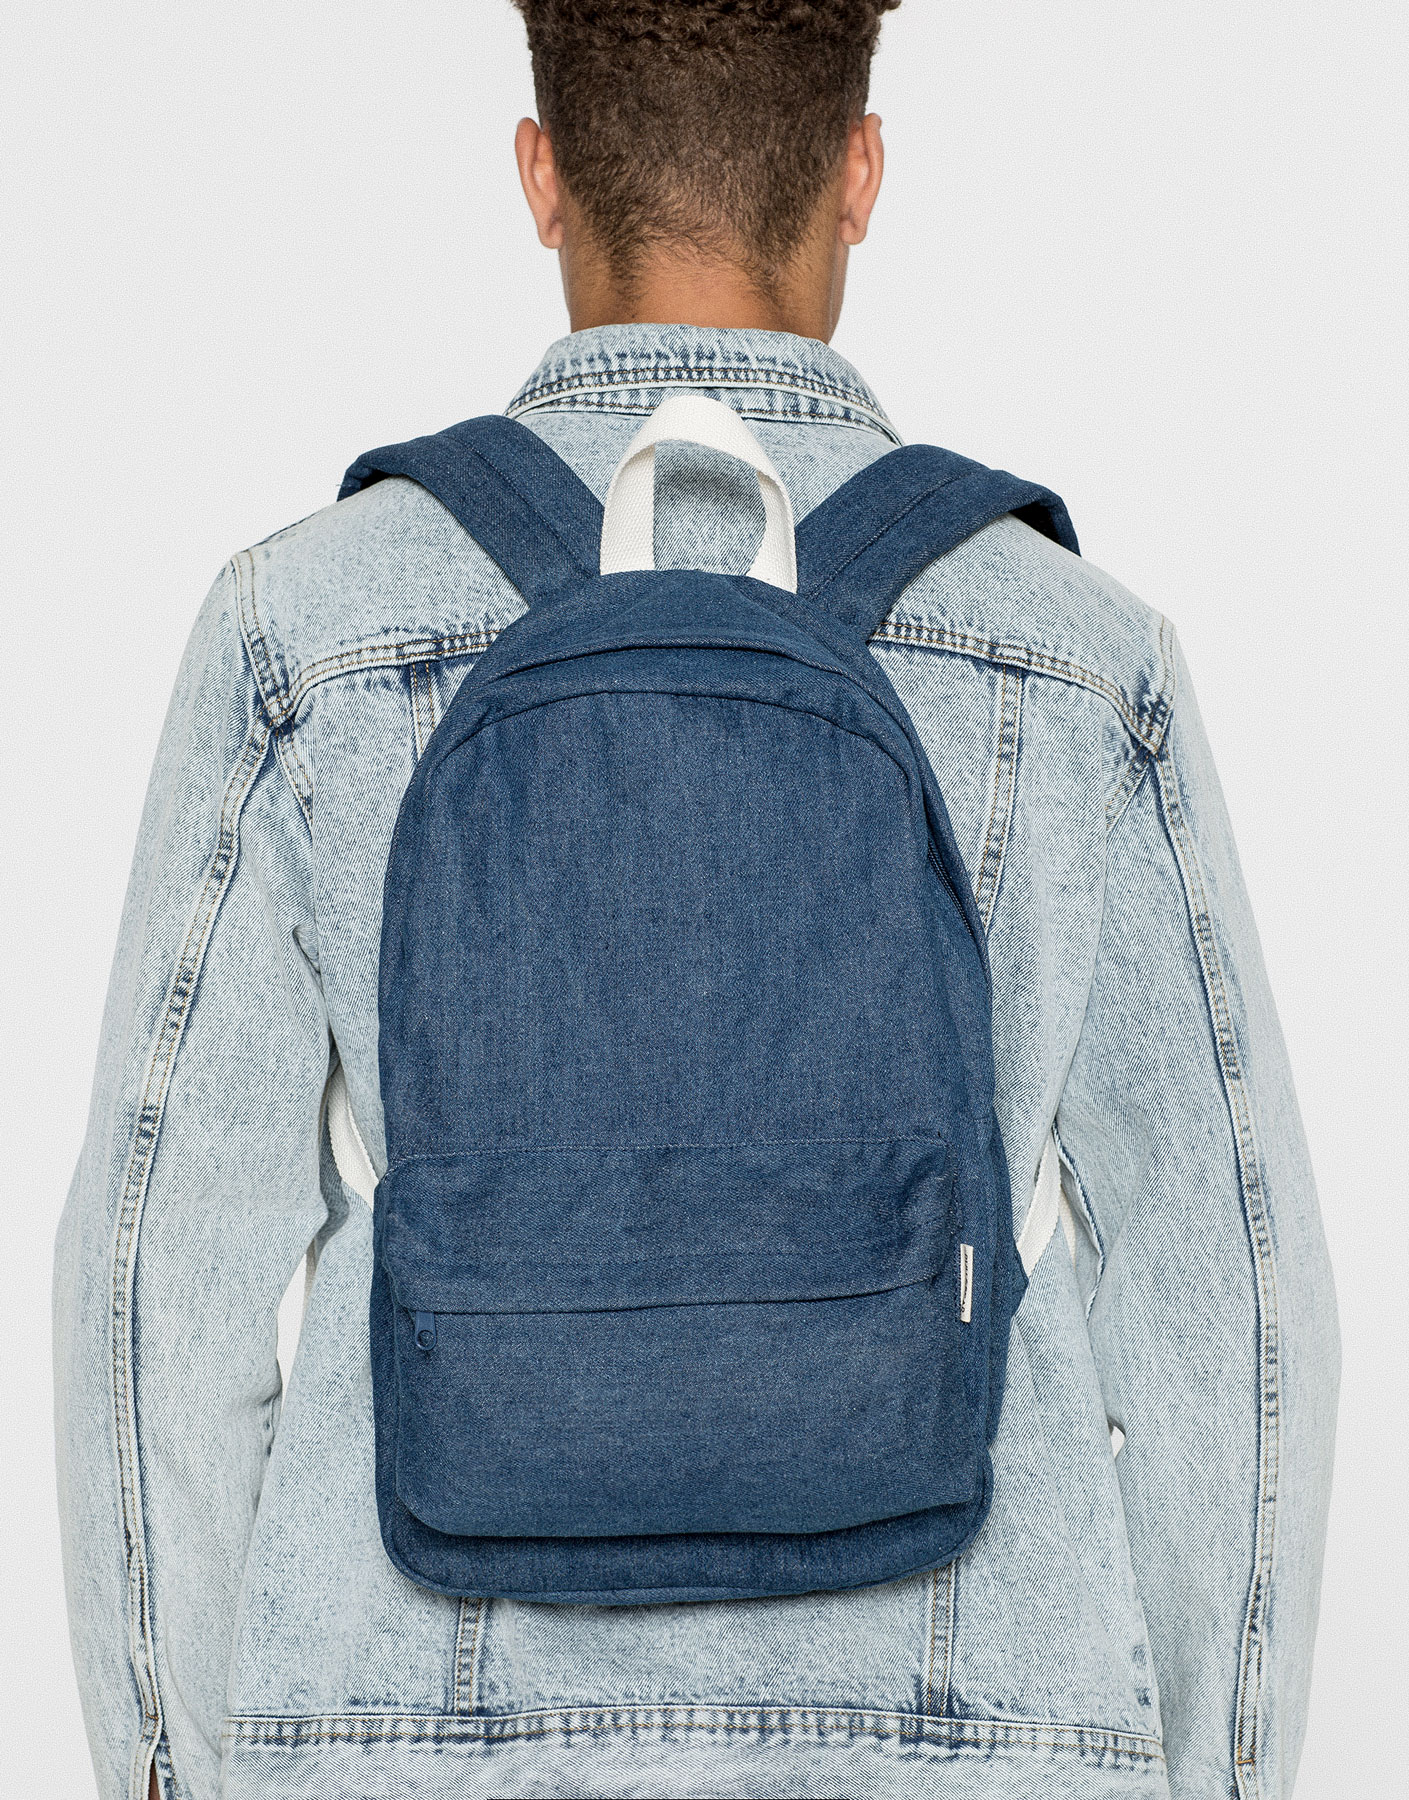 Sac à dos denim bleu